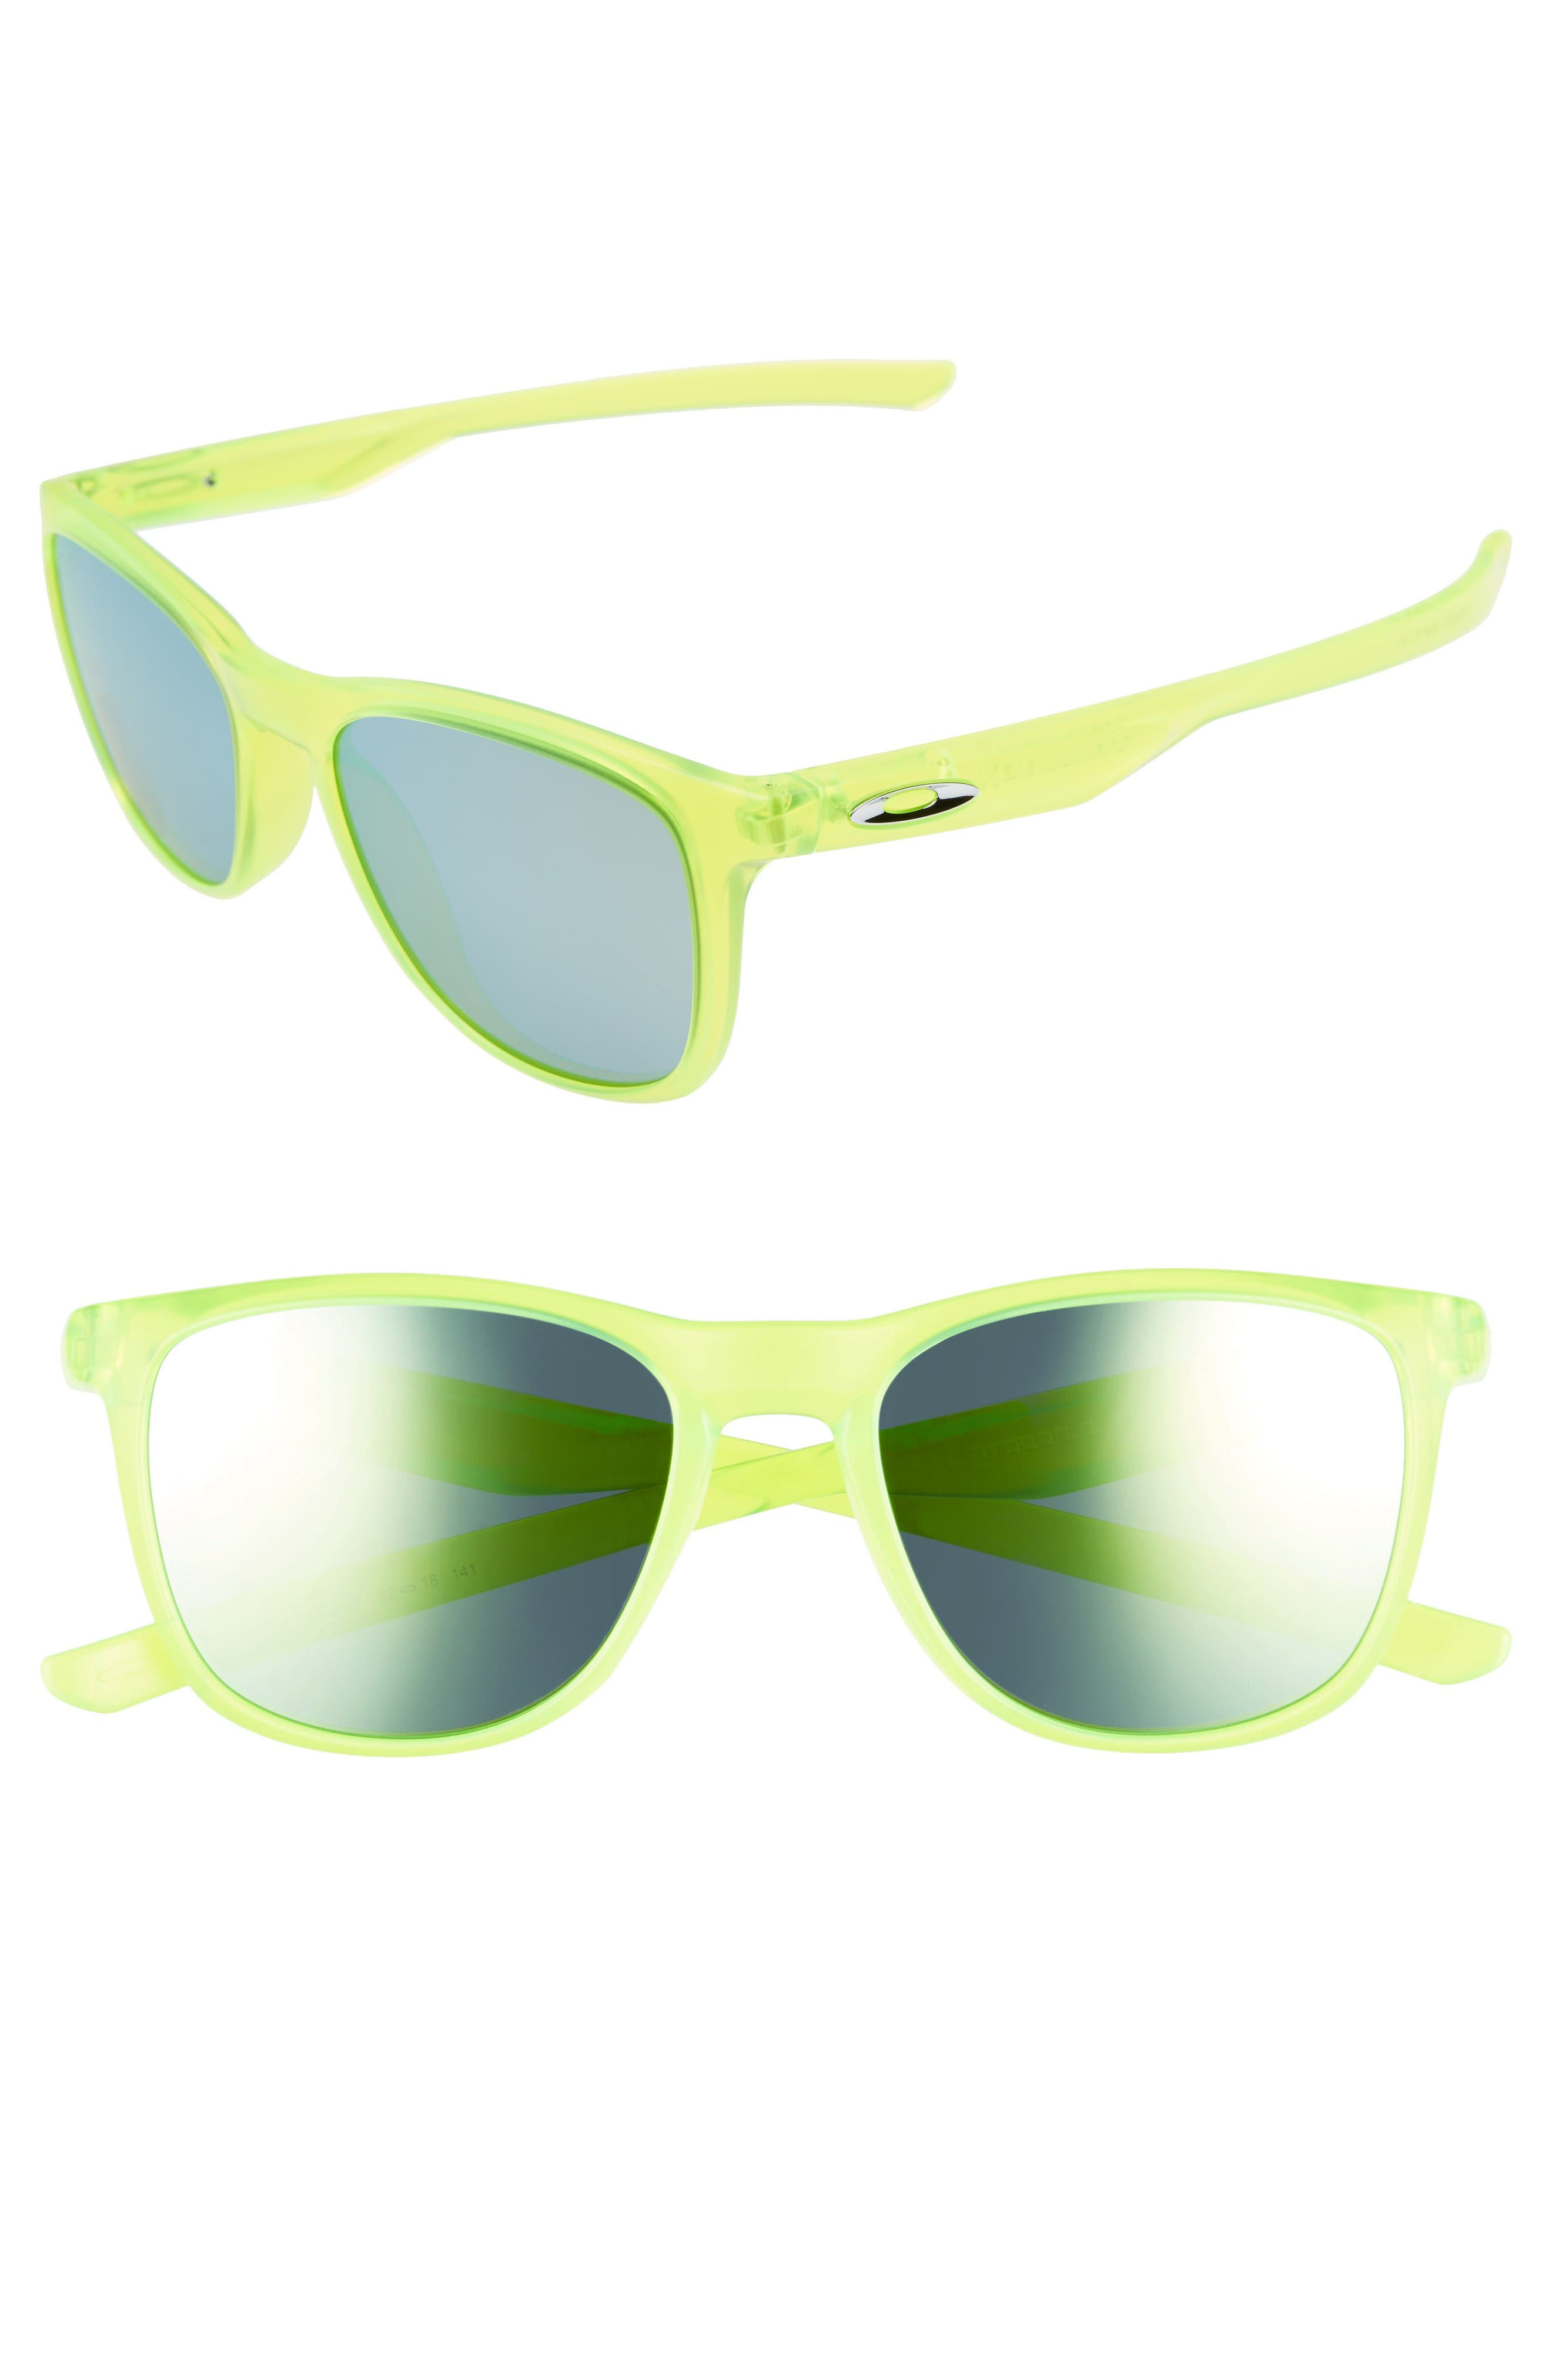 Trillbe X 52mm Sunglasses,                         Main,                         color, Uranium/ Emerald Iridium